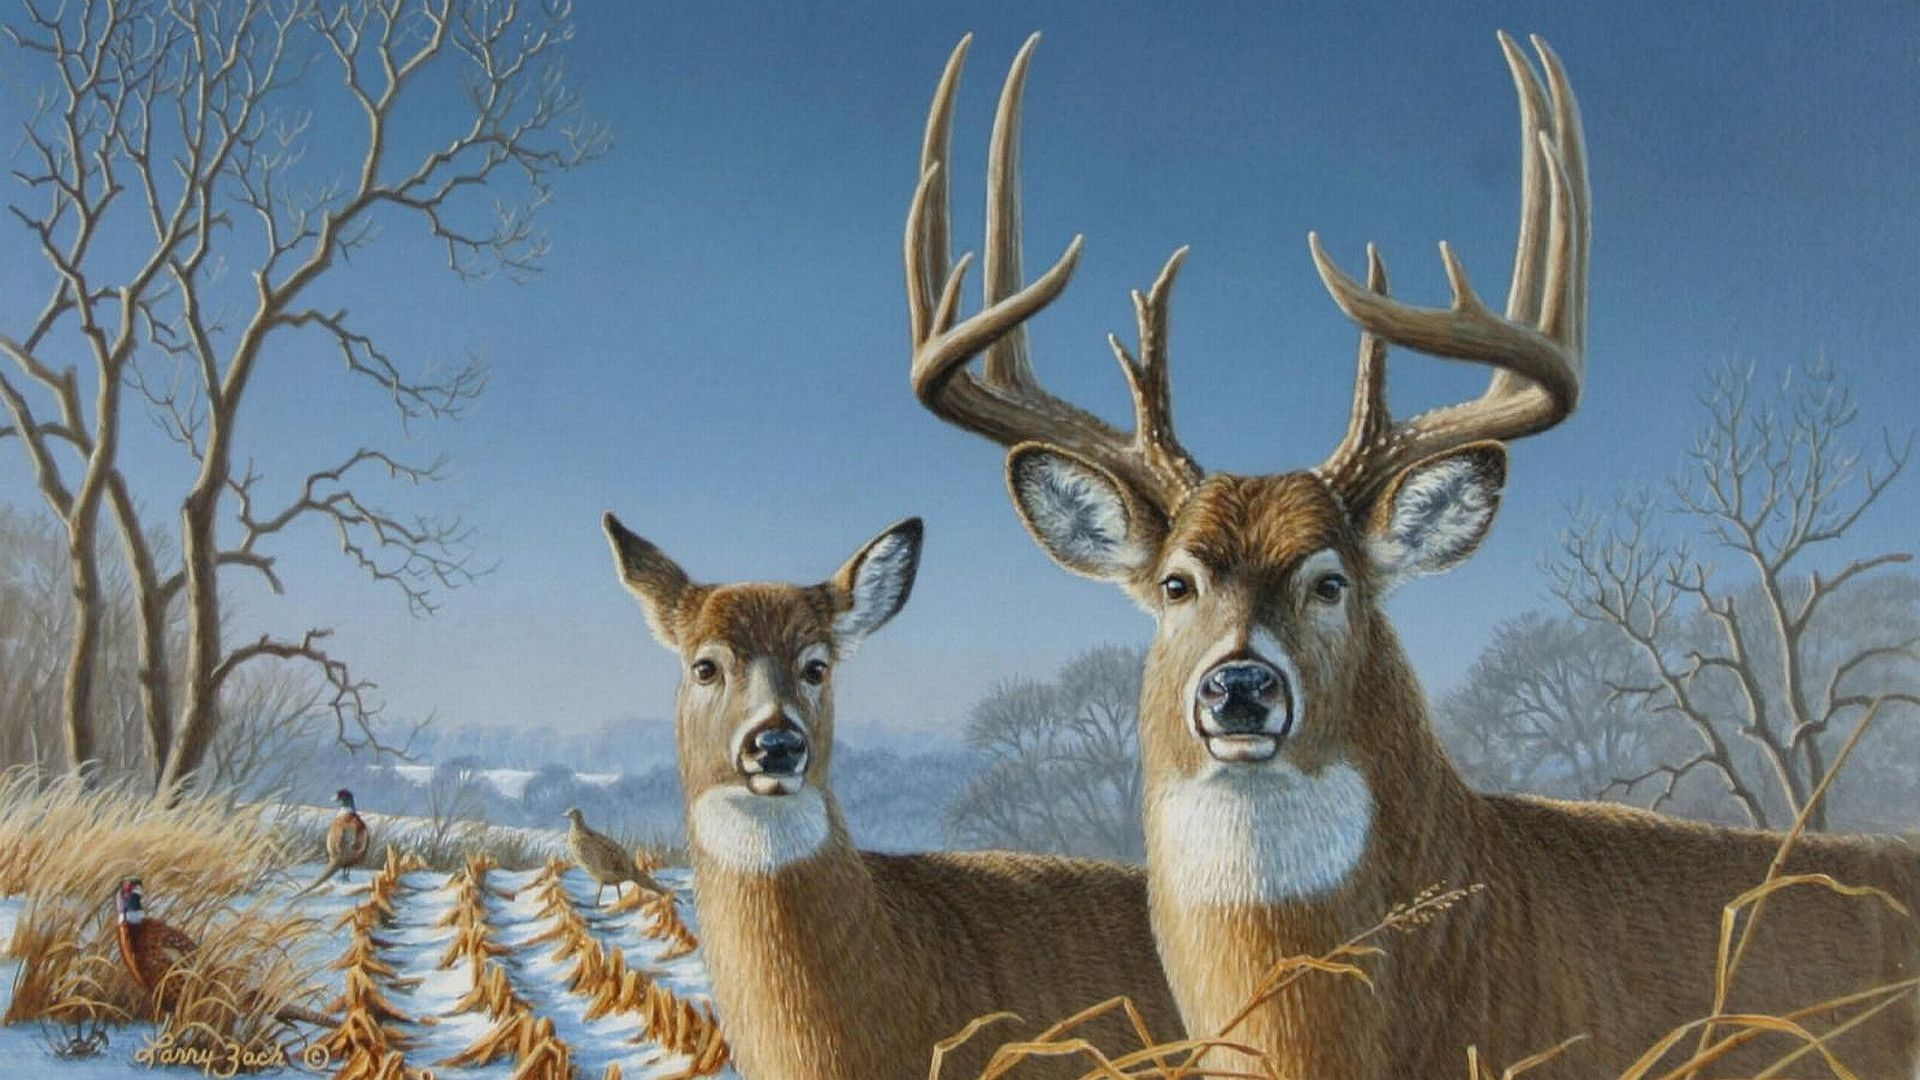 Deer HD Wallpapers Images Pictures Photos Download Олень